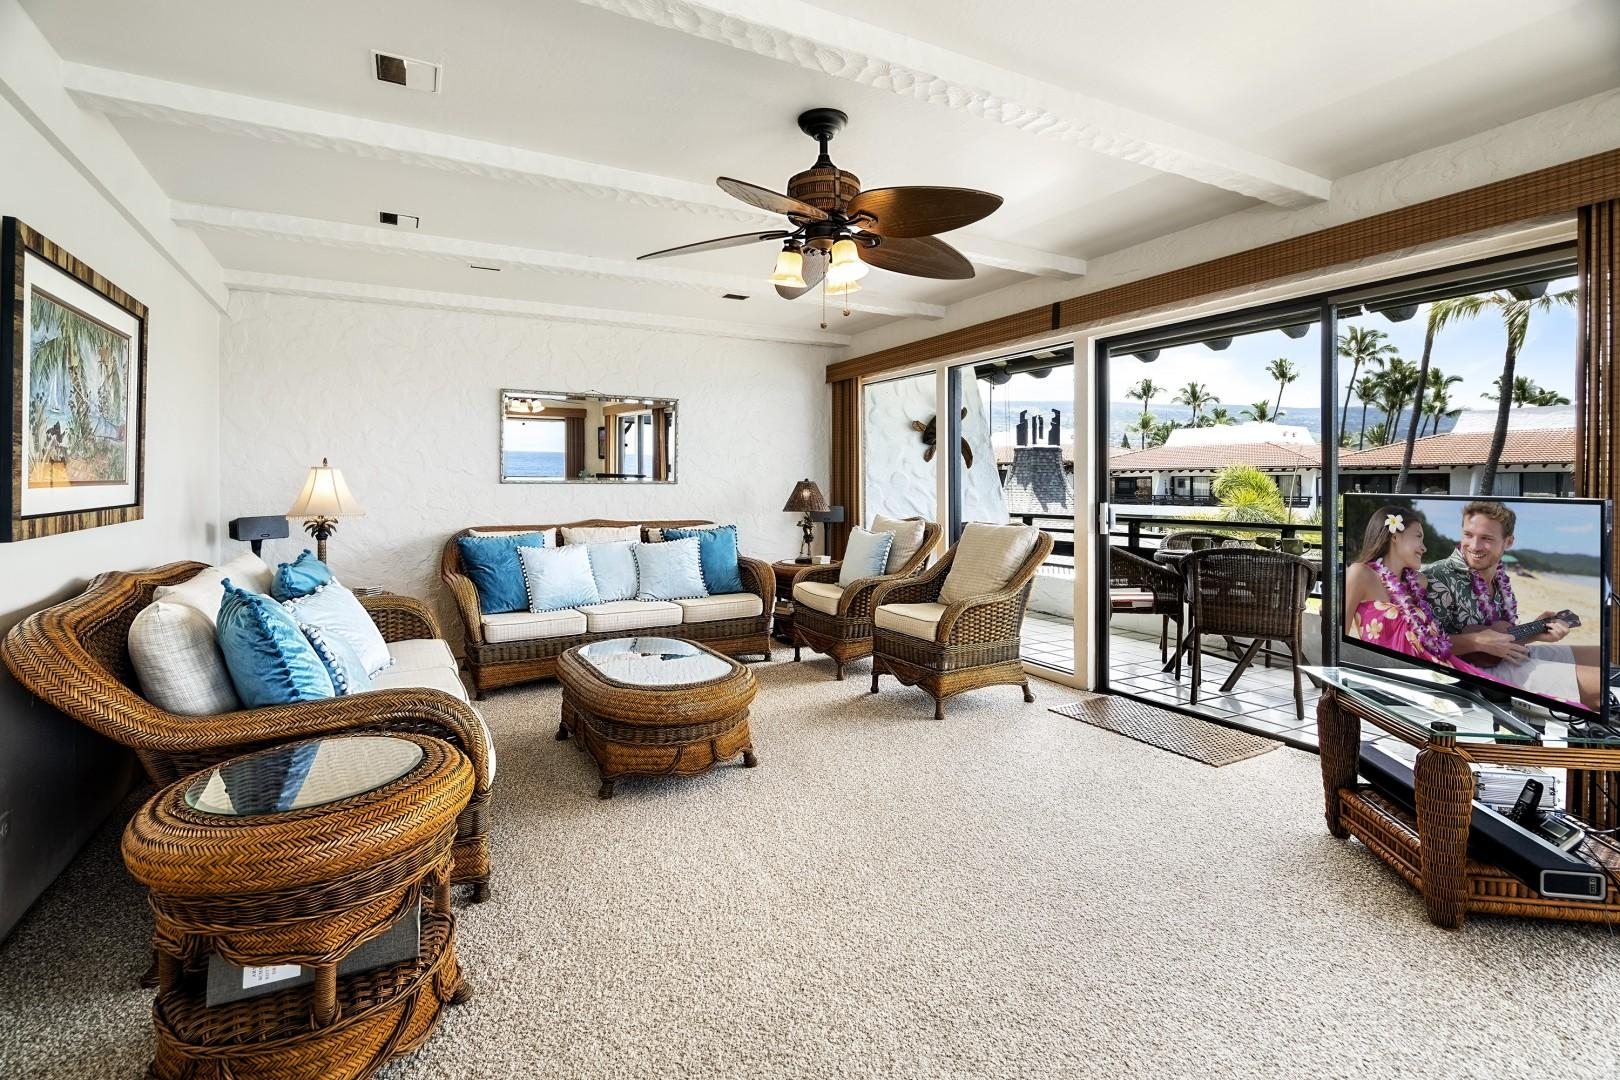 Ceiling fans and central A/C can be found here as well!